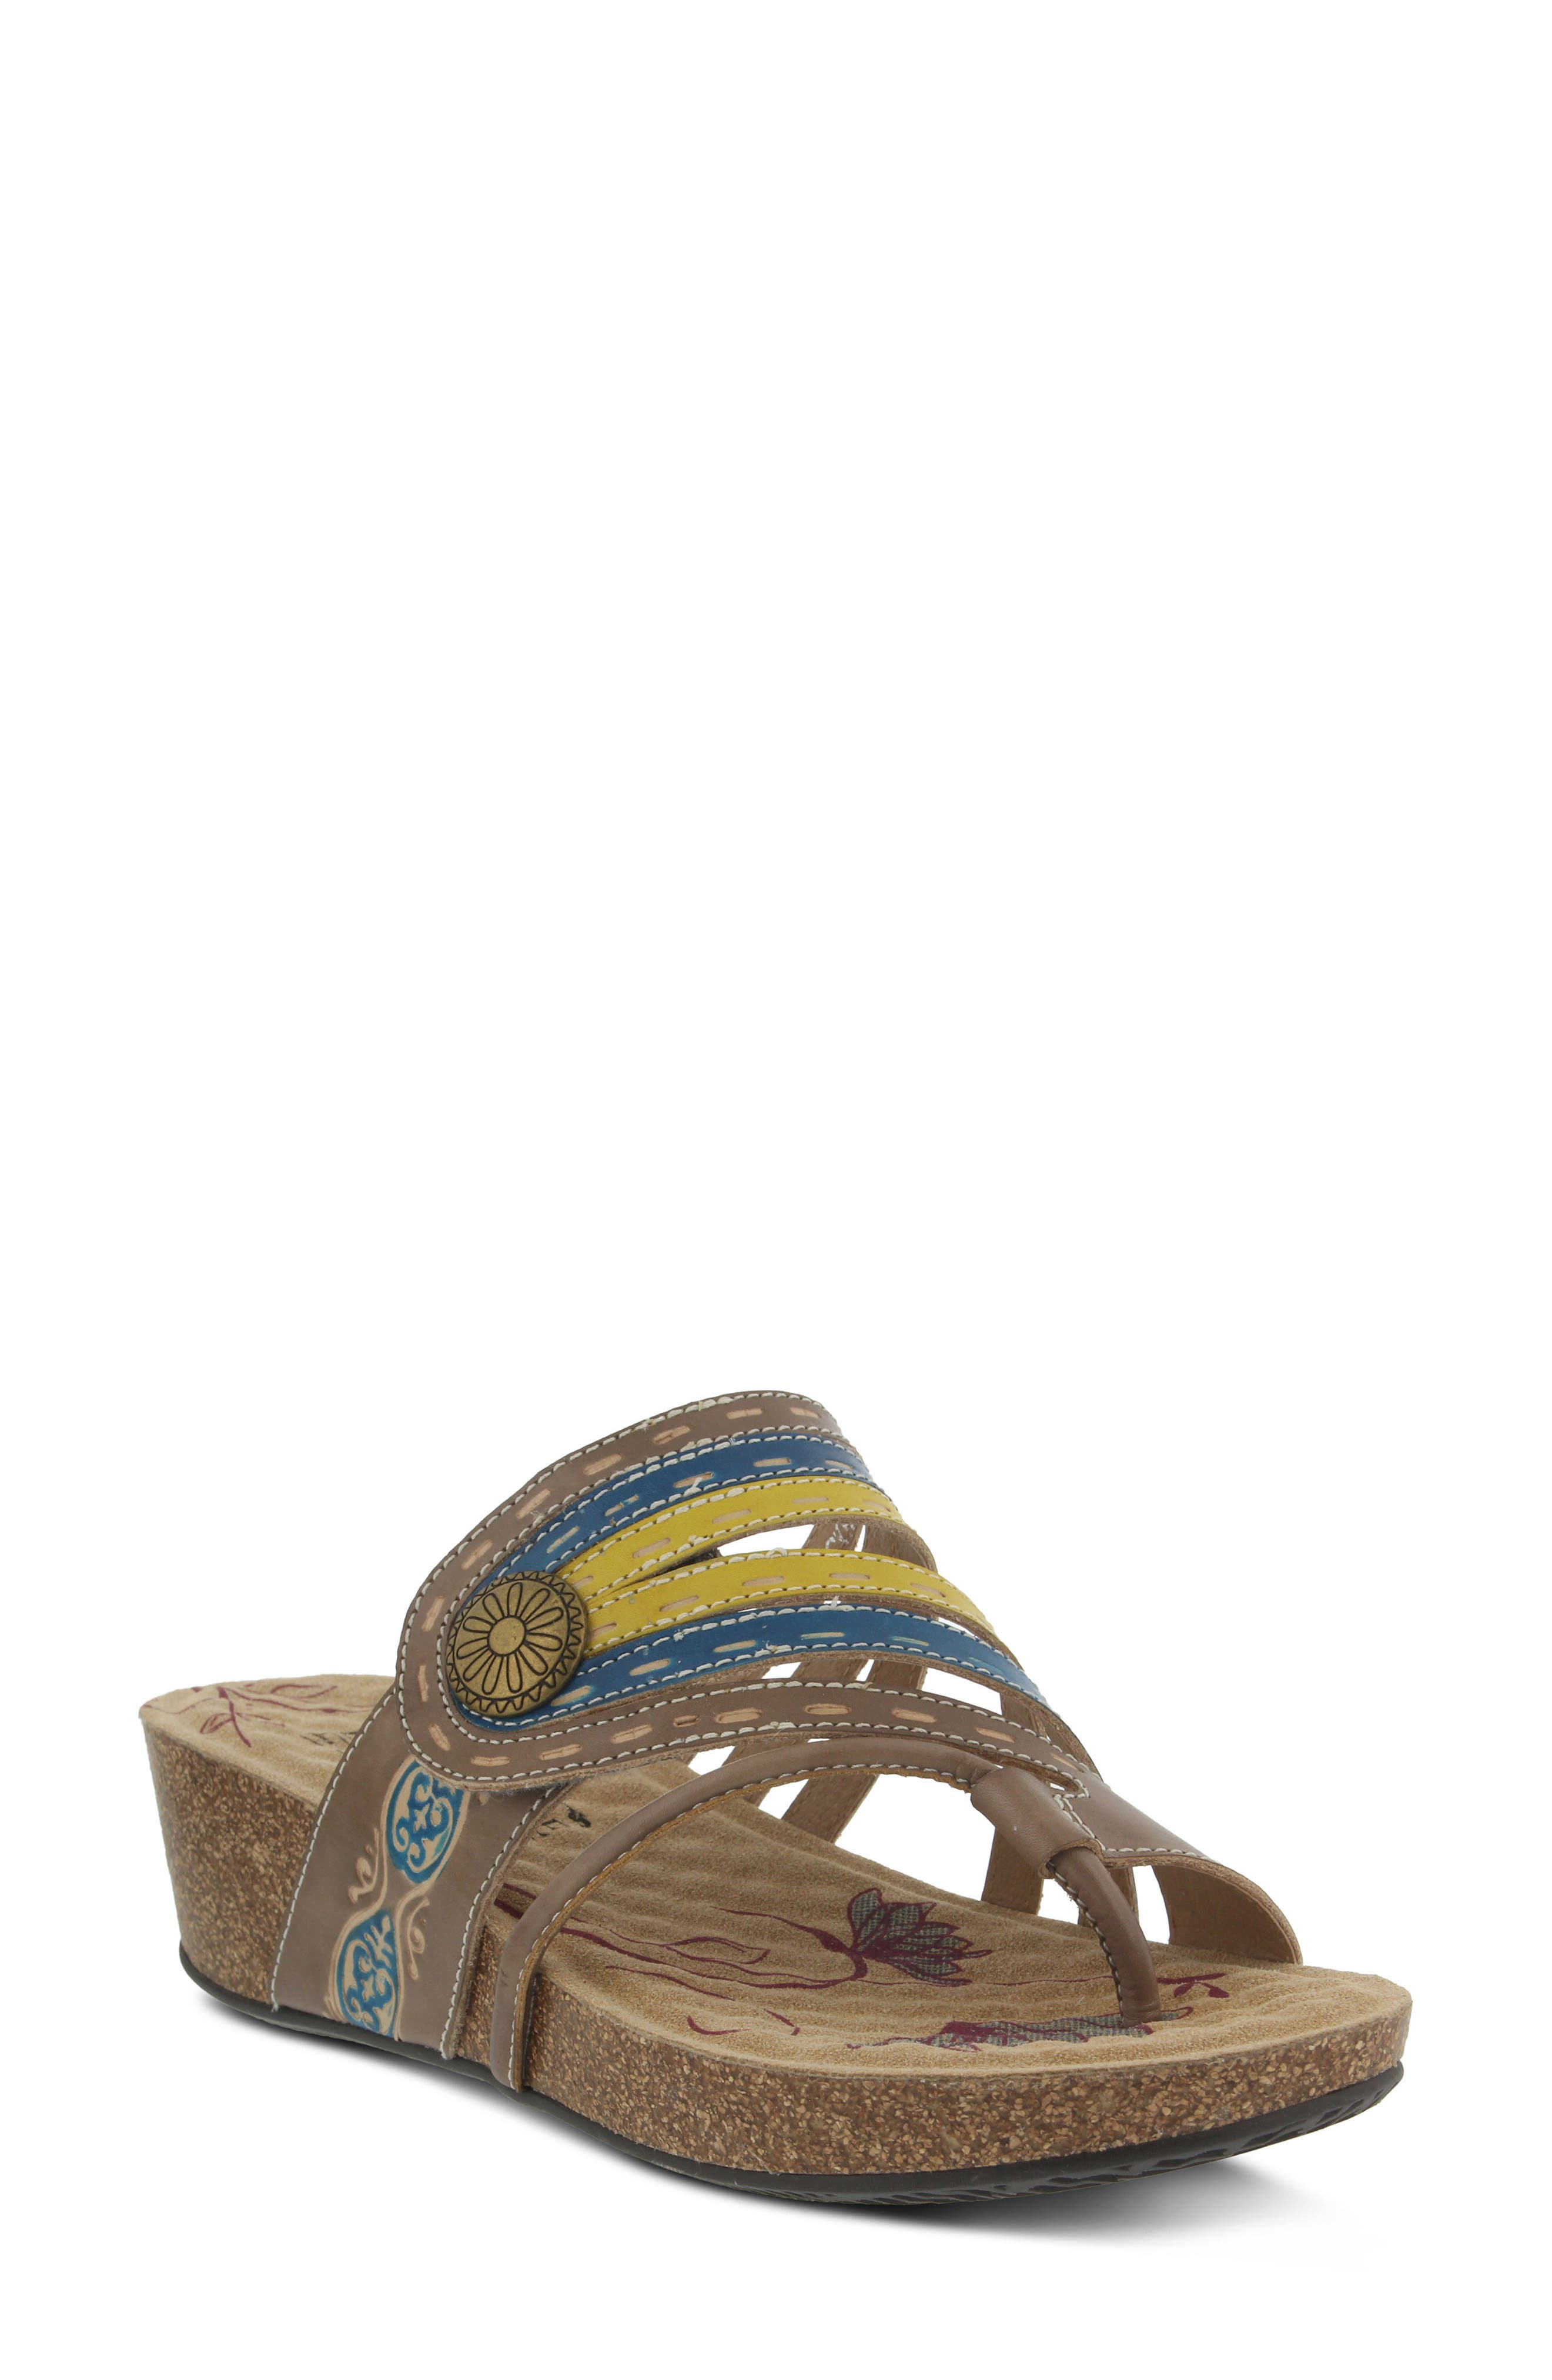 L'Artiste Claudia Wedge Sandal,                             Main thumbnail 1, color,                             Taupe Leather